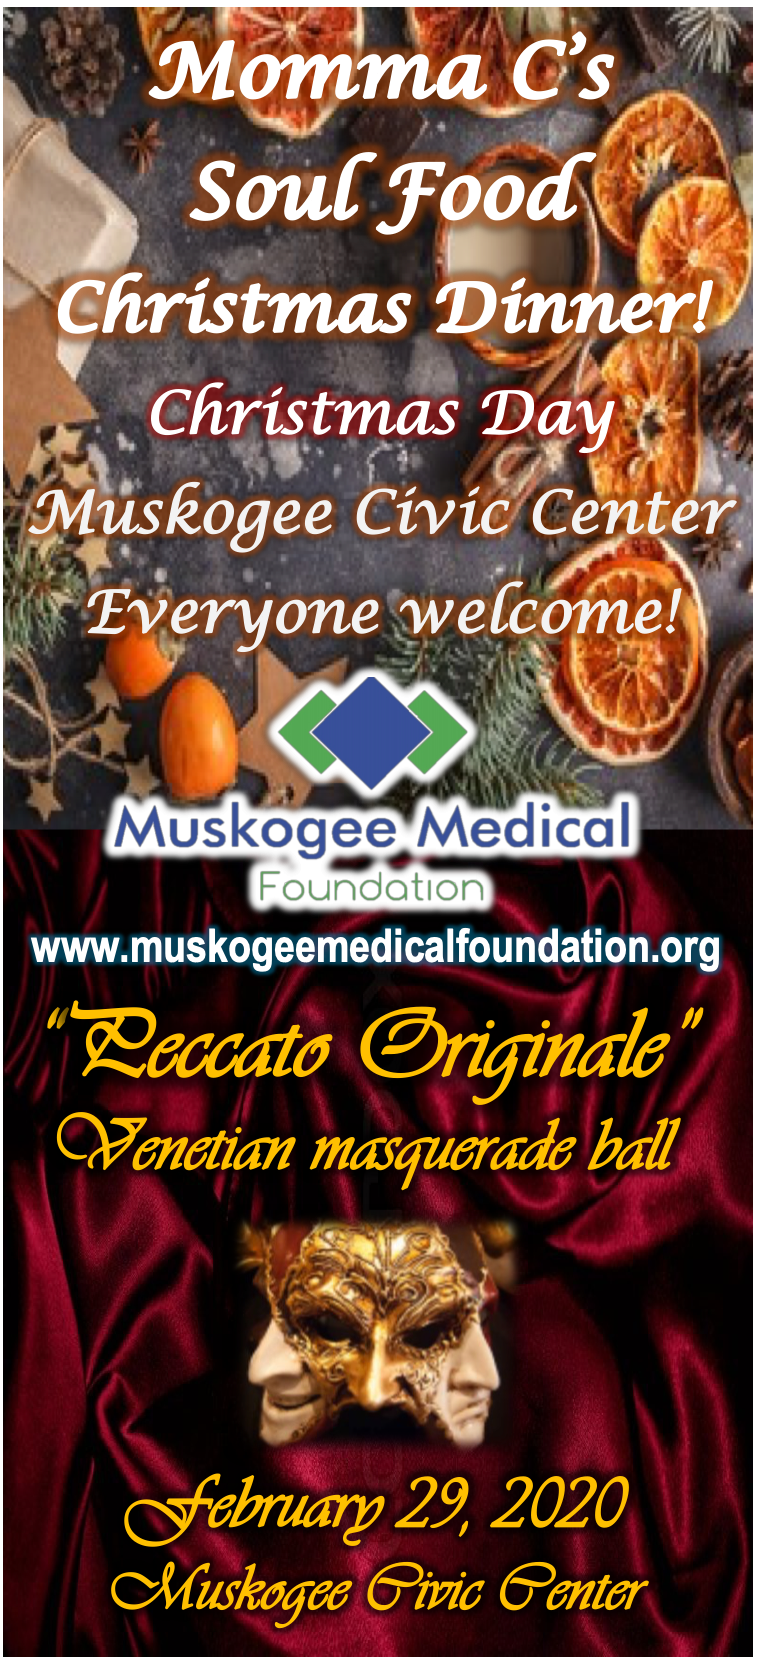 muskogee medical foundation 1572385838